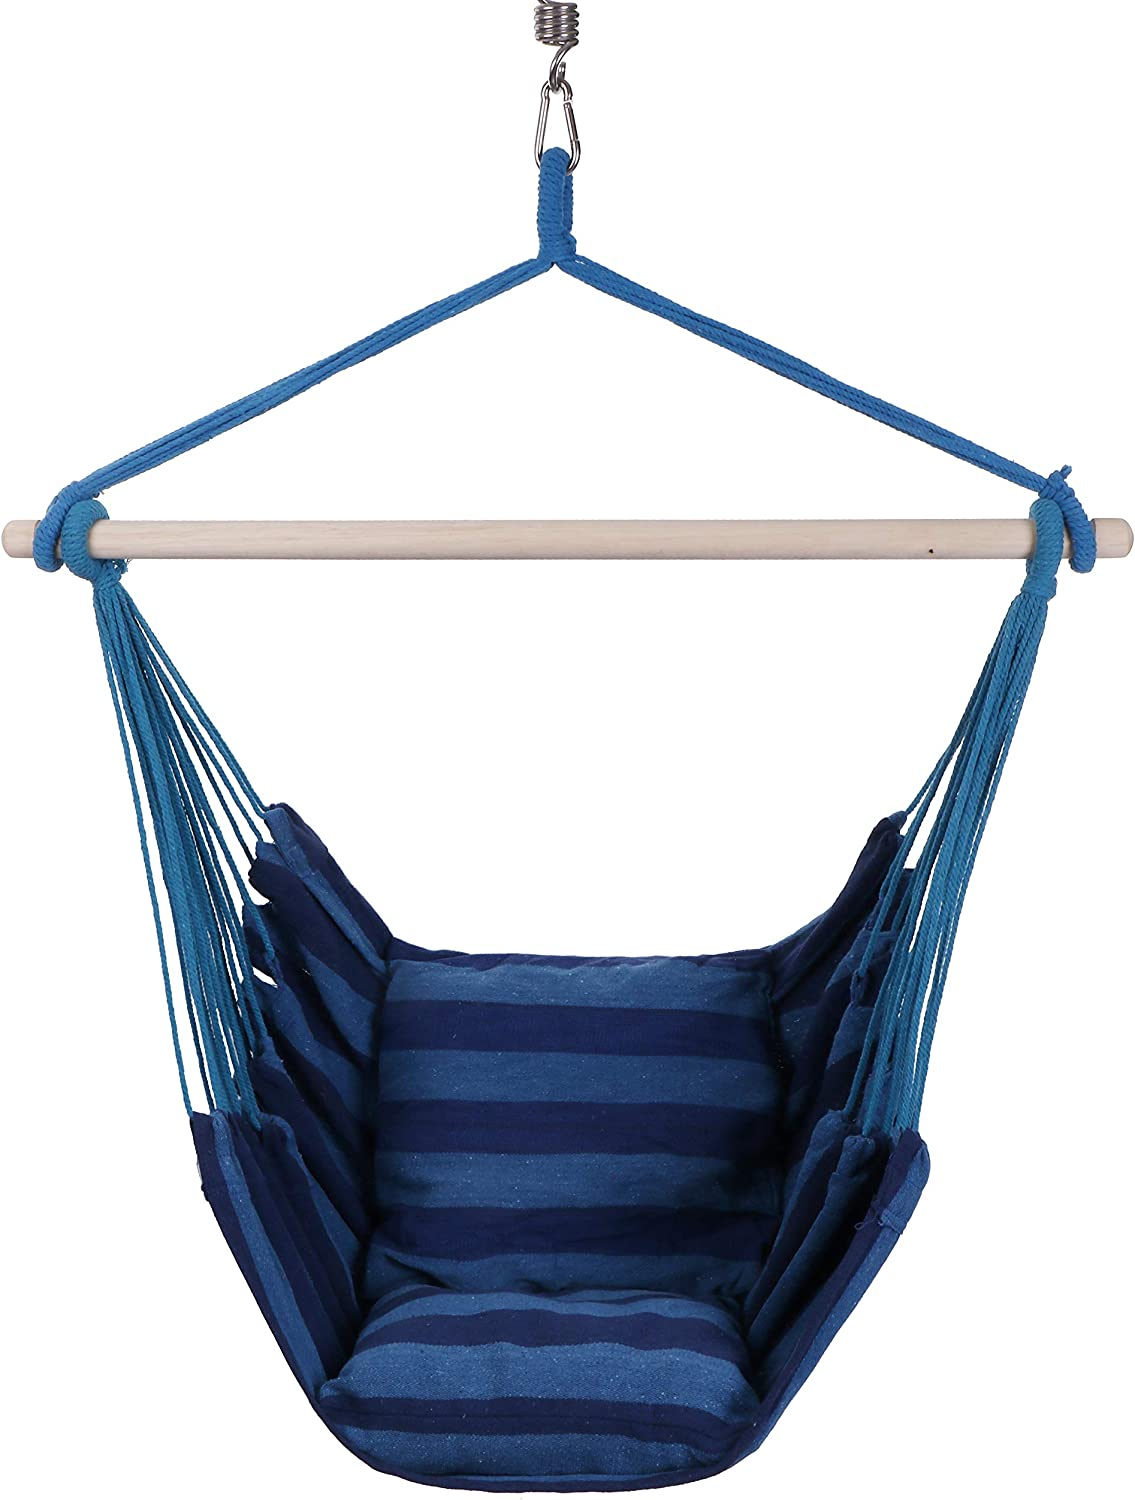 KLM Hanging Rope Hammock Chair Swing Perfect Hanging Chair for Bedroom, Porch Swing Hammock Chair, Indoor Hammock Hammock Swing Chair Indoor-Outdoor One Person Swing with Pillows and Hanging Kit